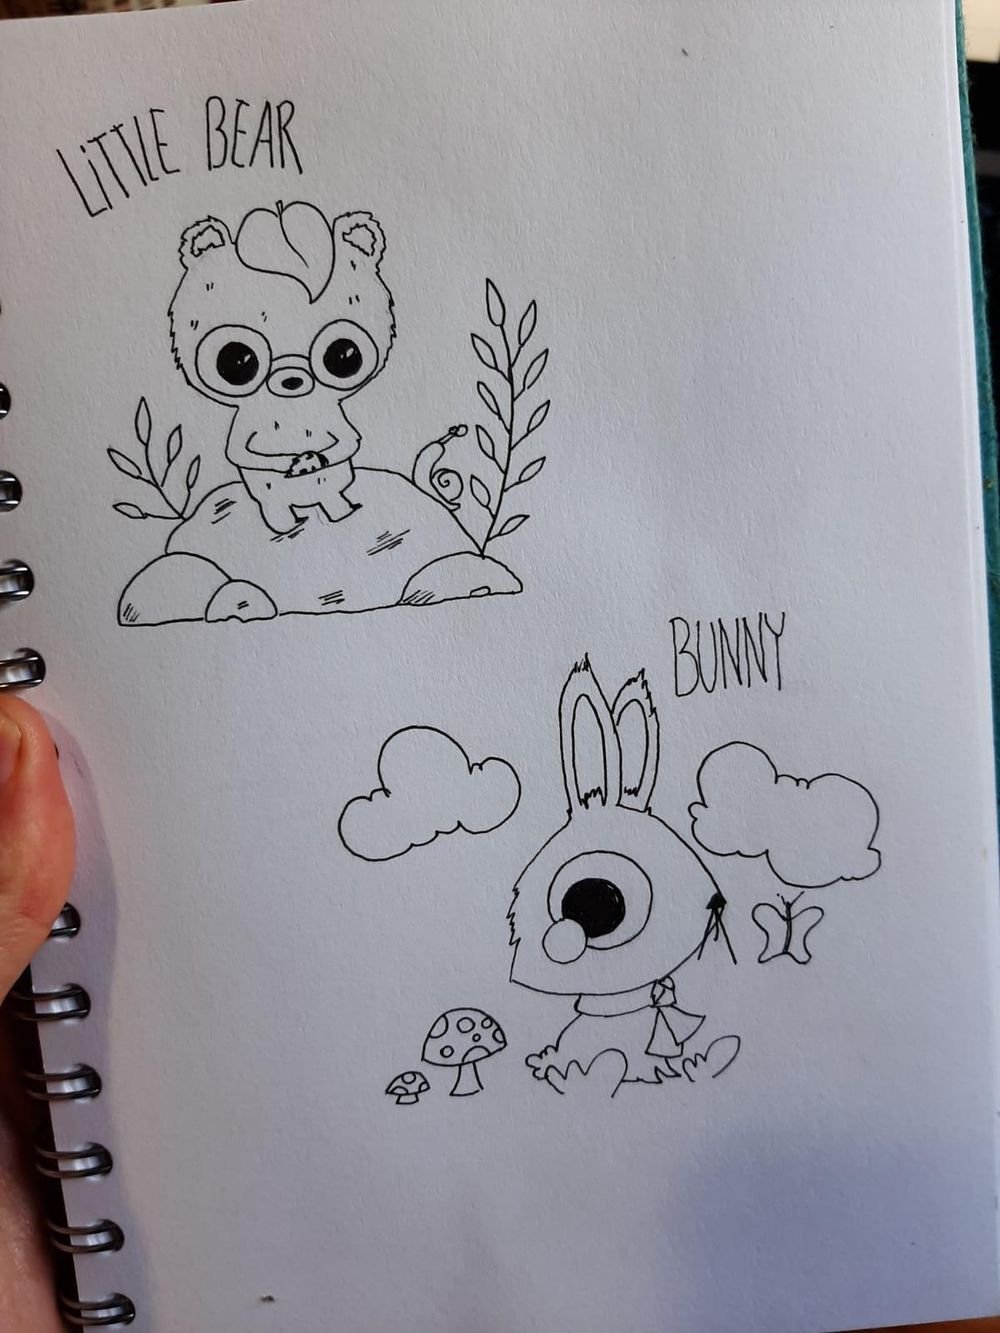 Cute animials - image 2 - student project